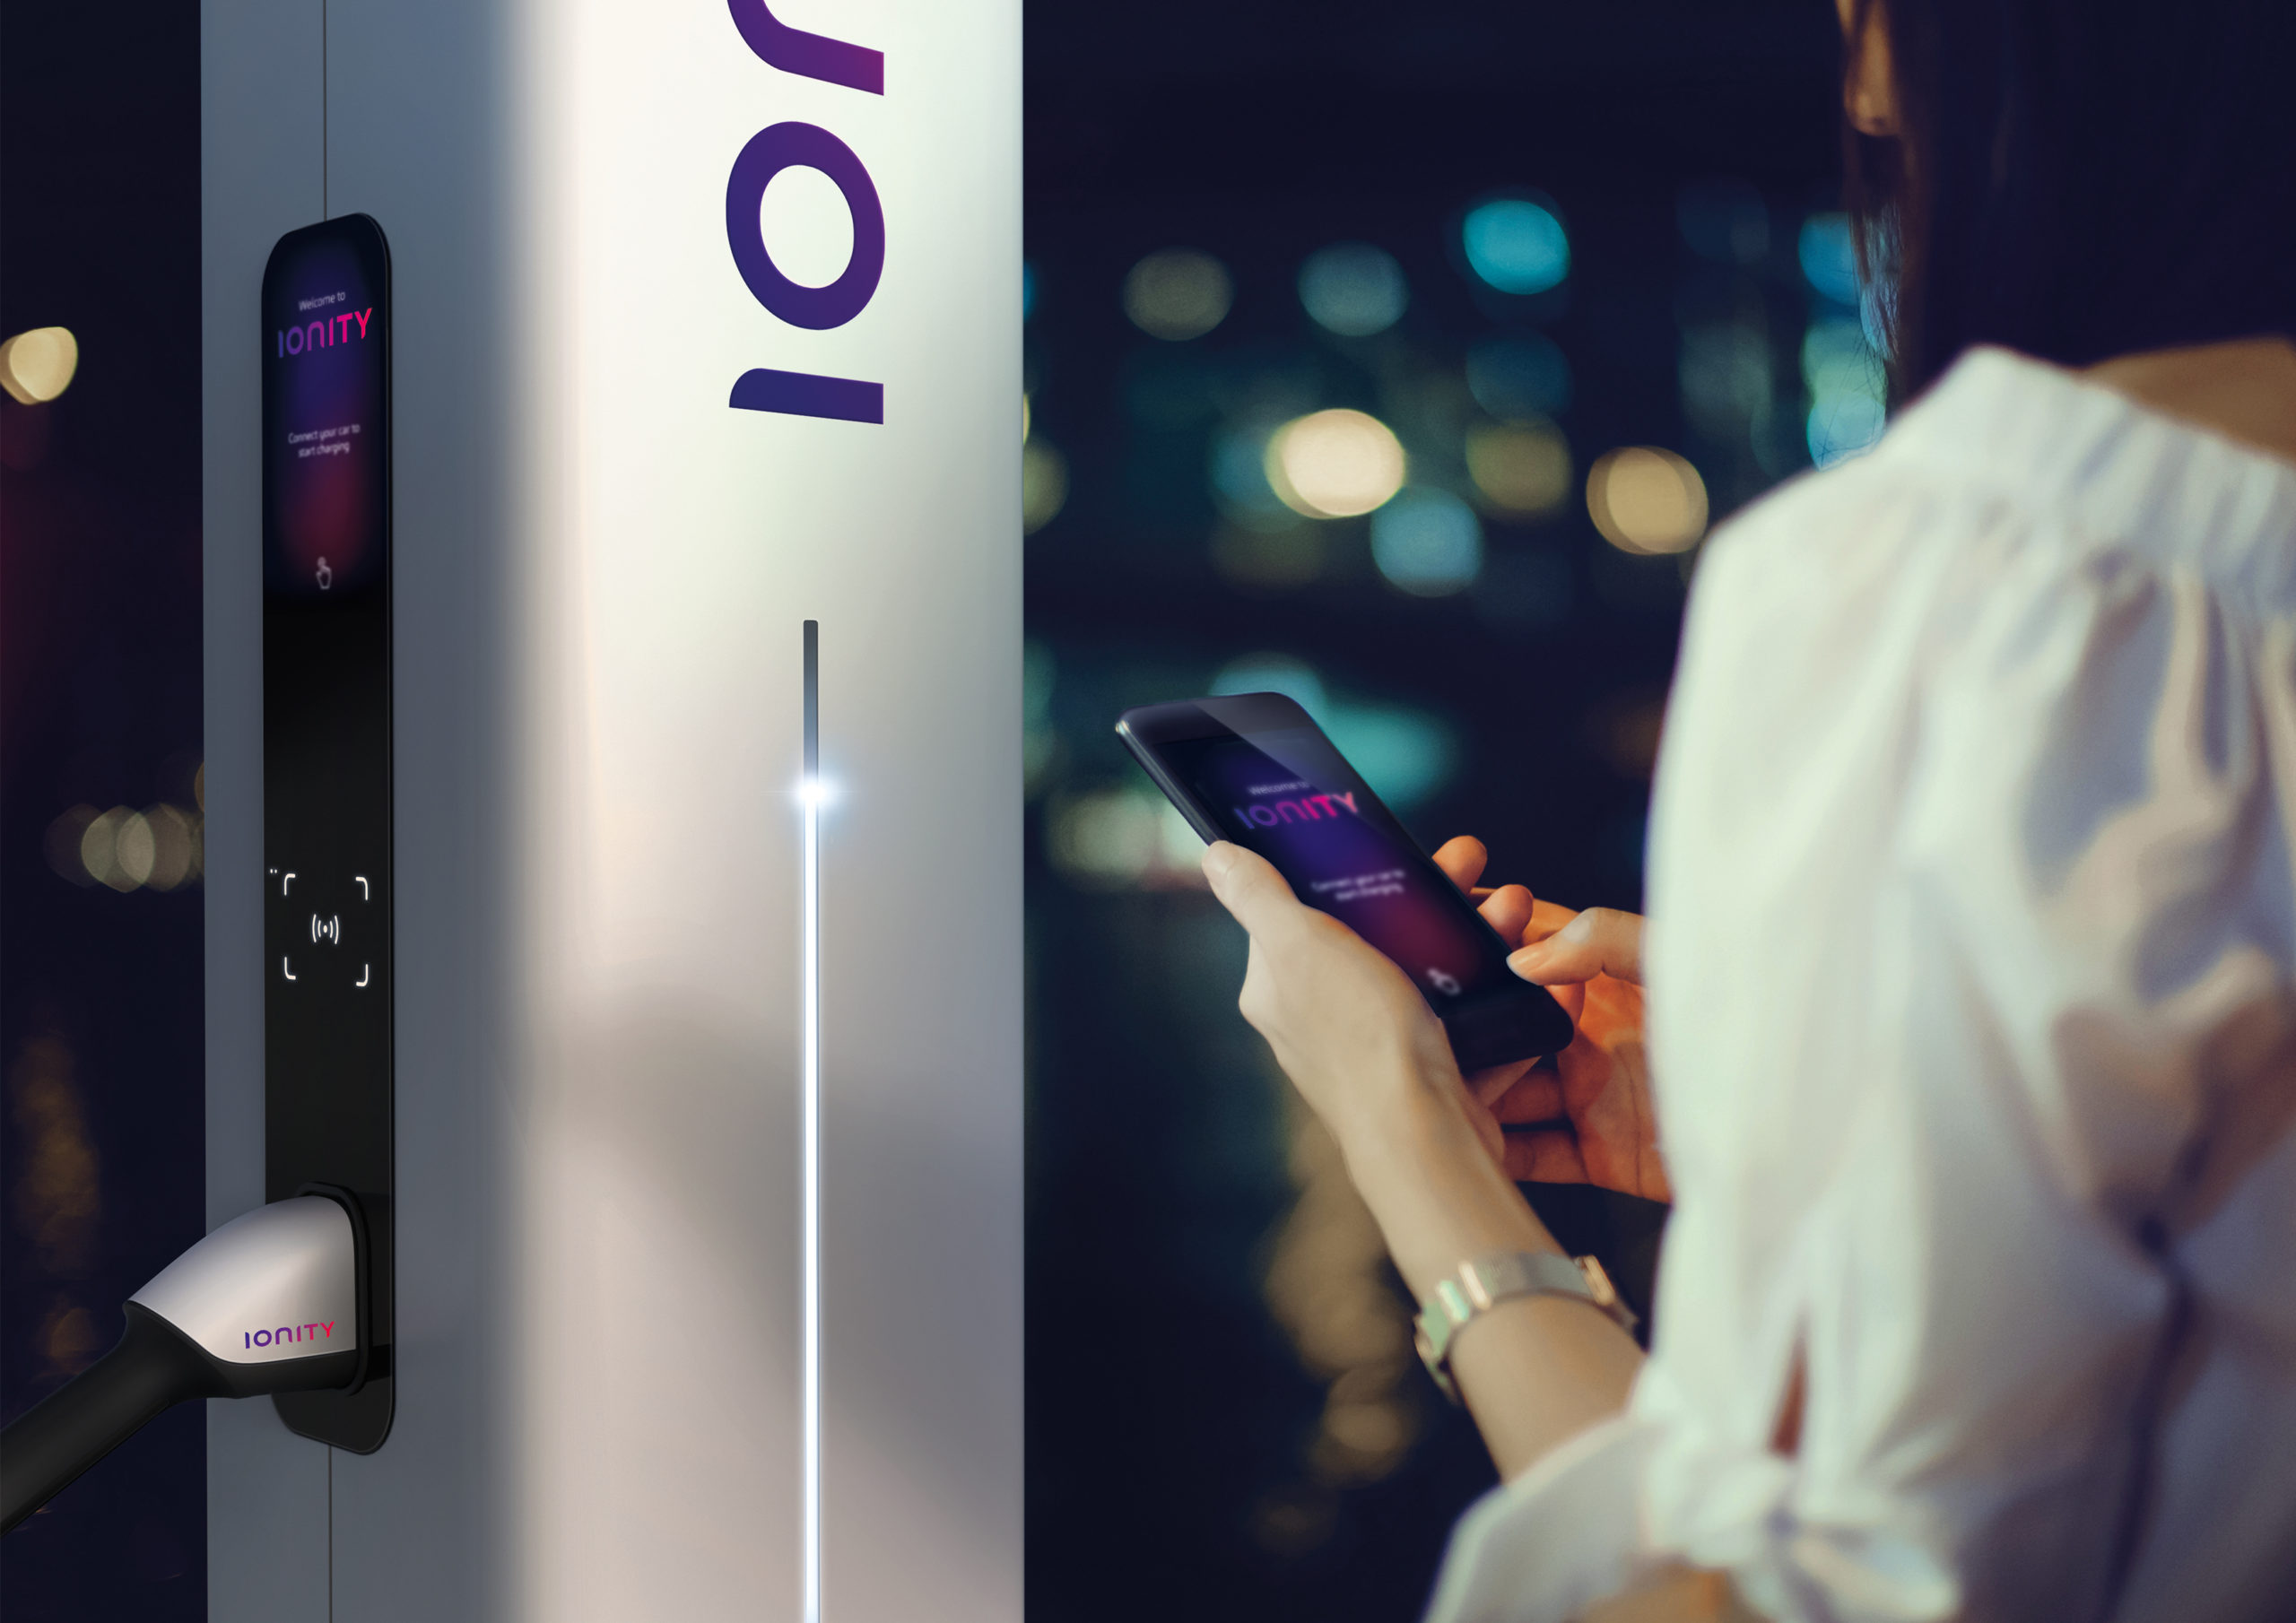 Ionity Charging Station App